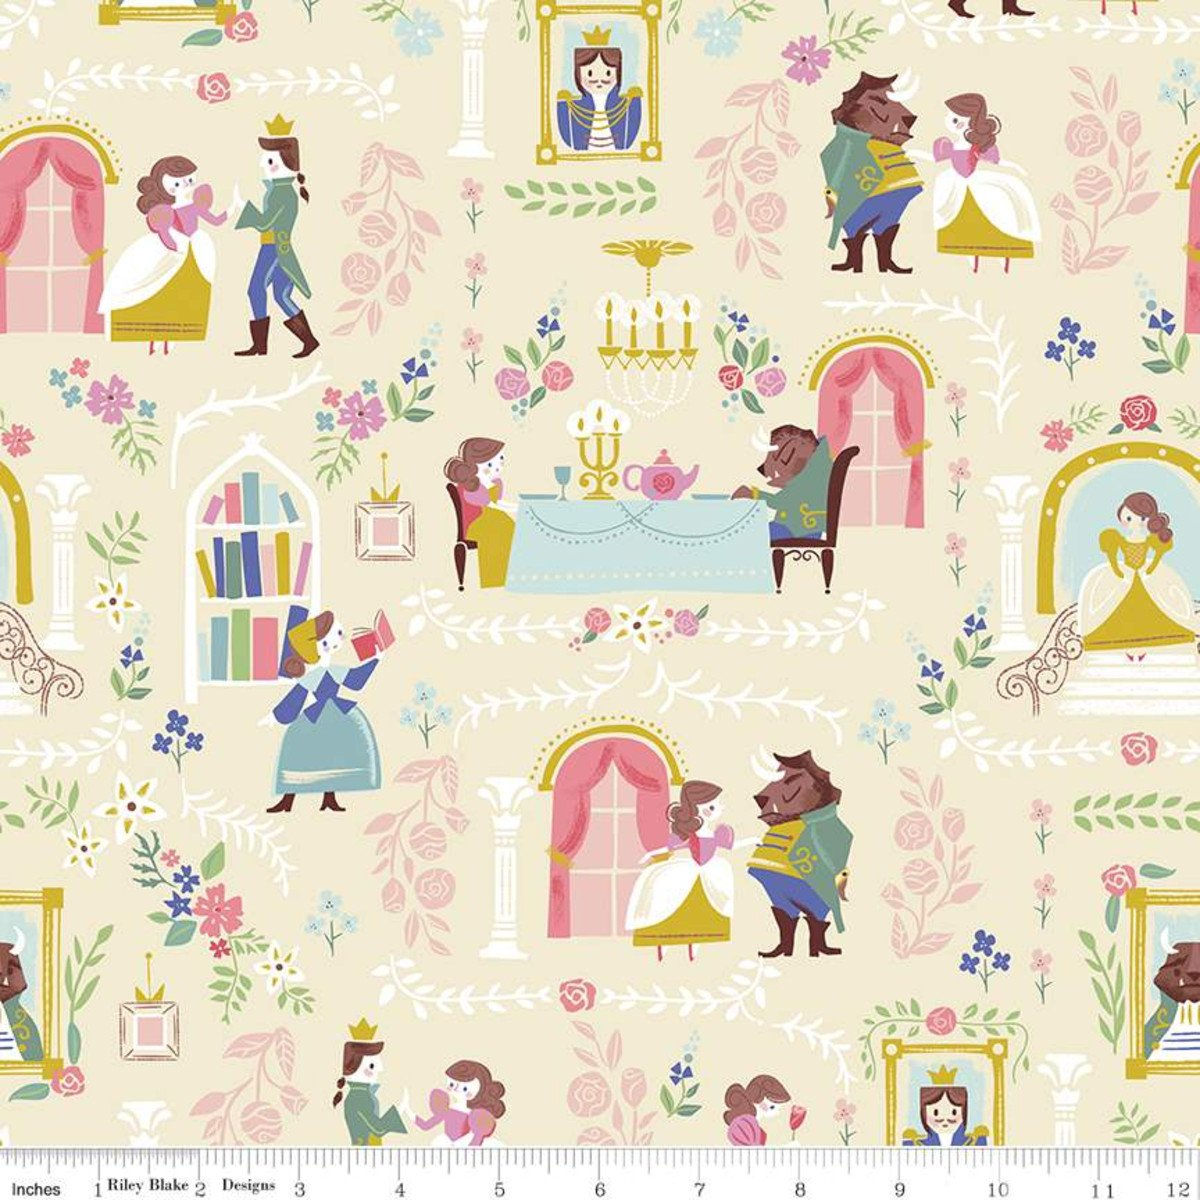 Beauty & the Beast Main Cream Fabric by Riley Blake